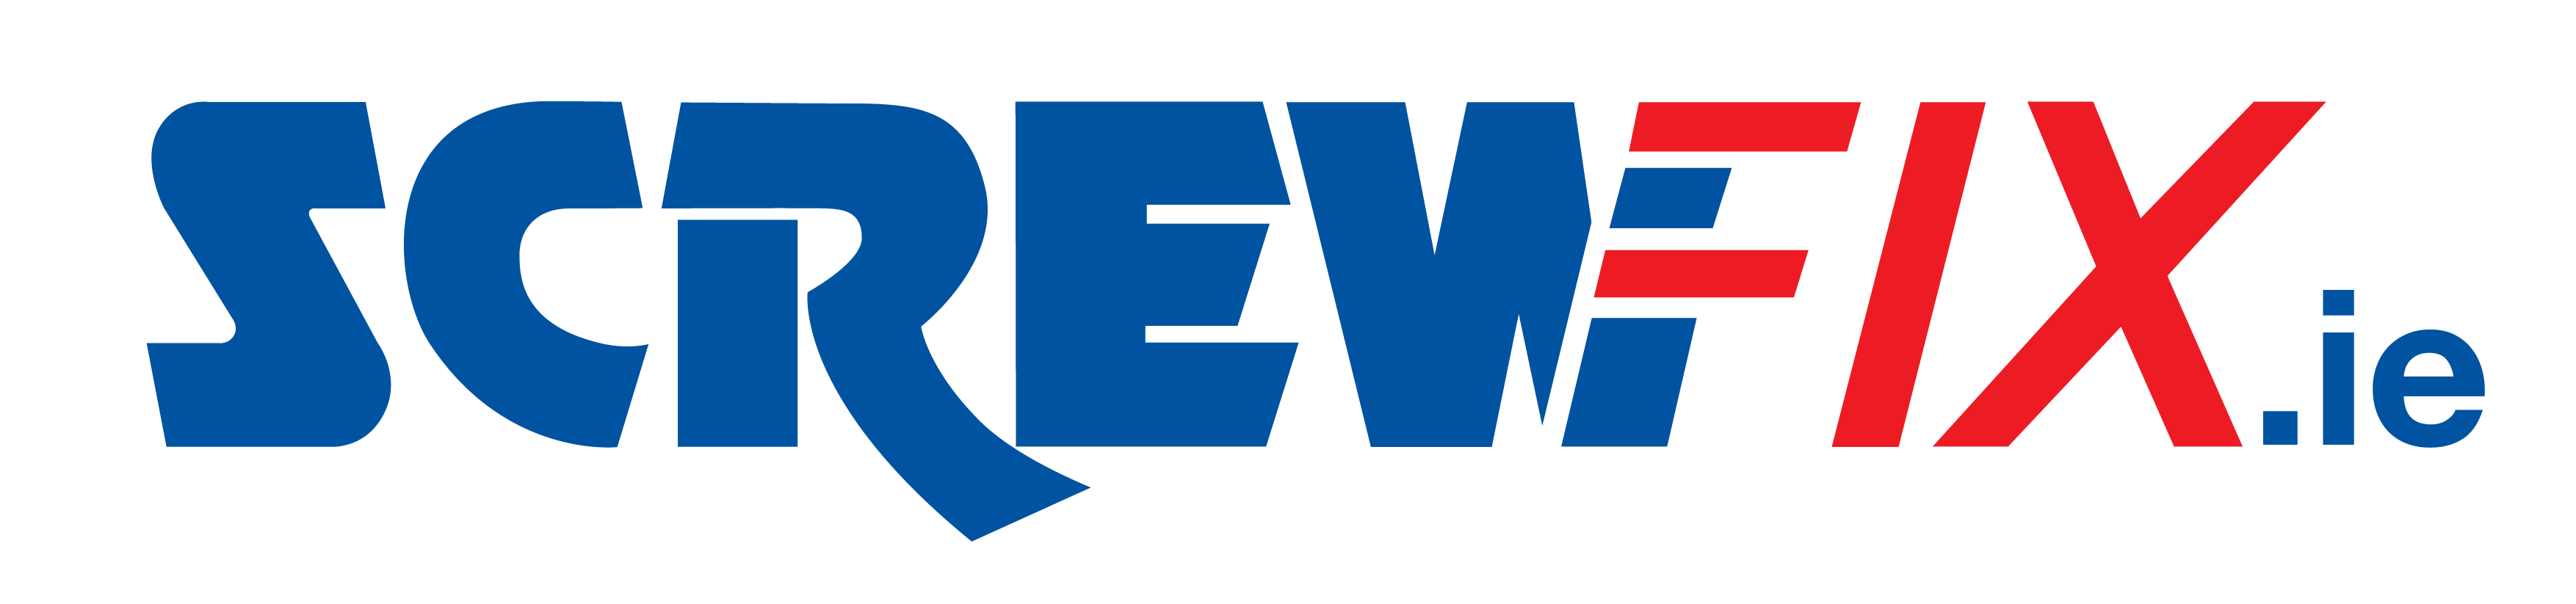 Screwfix Ireland